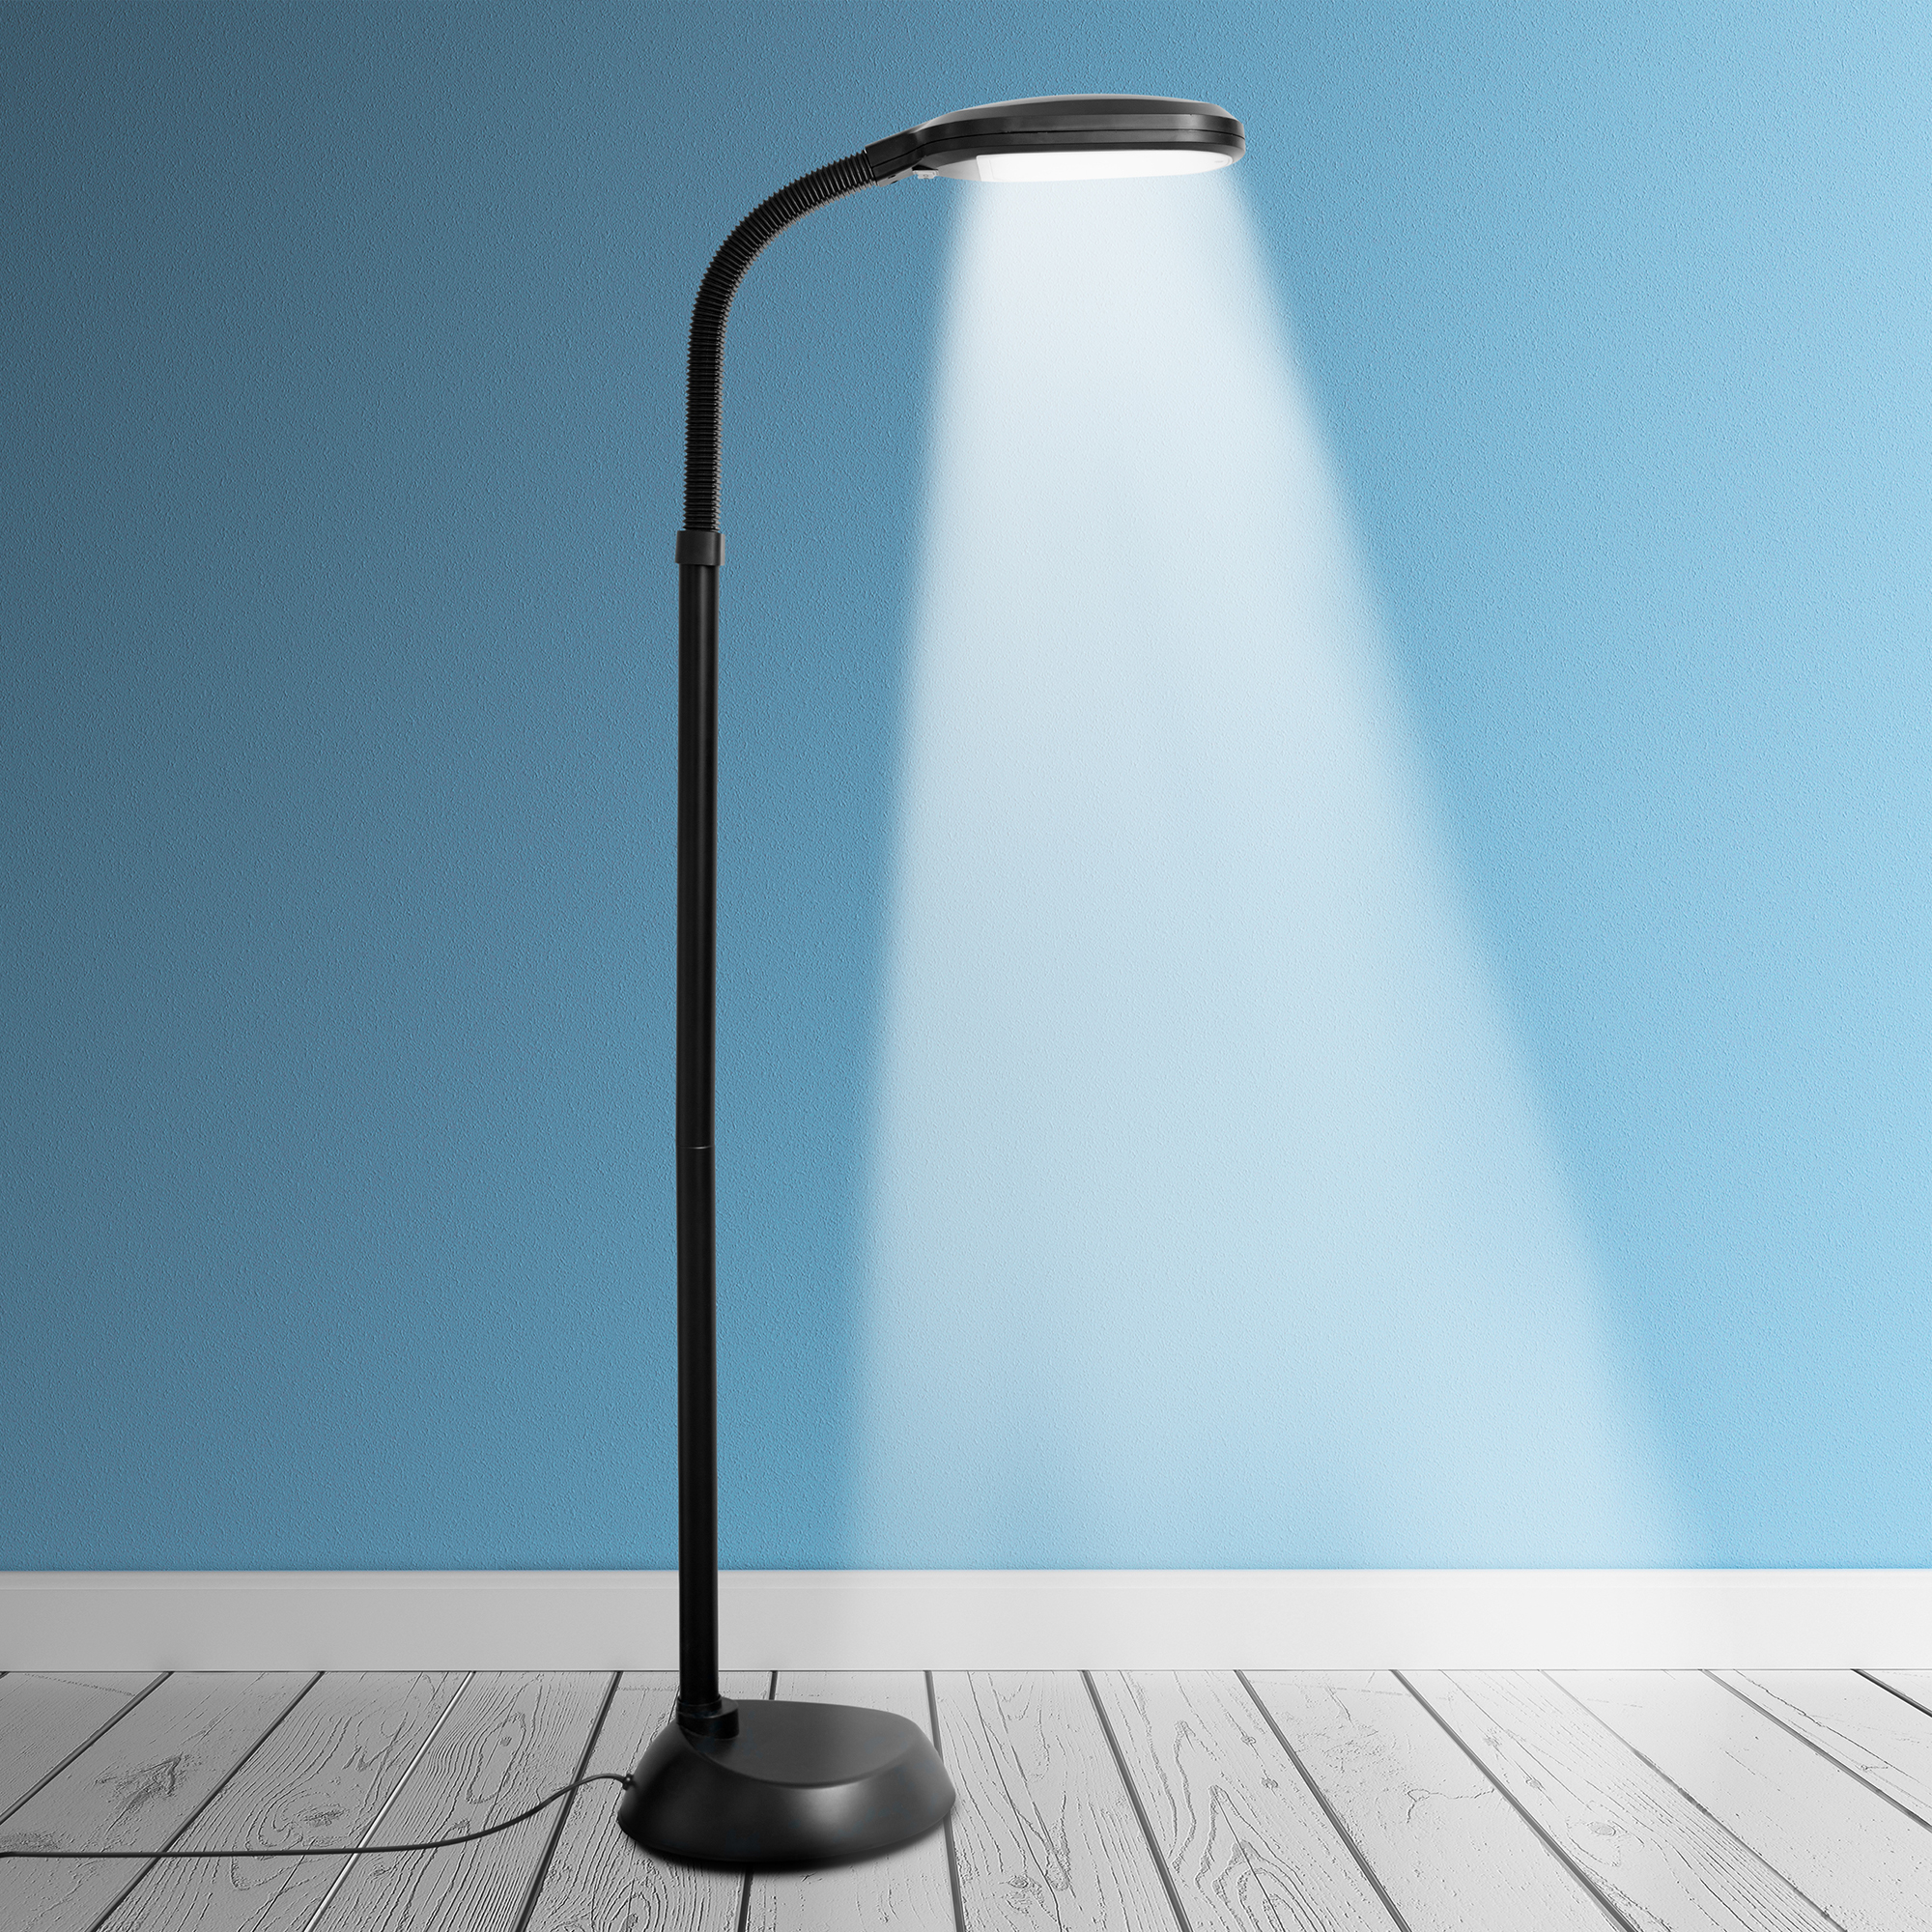 Kenley Natural Daylight Floor Lamp 12w Led Dimmable